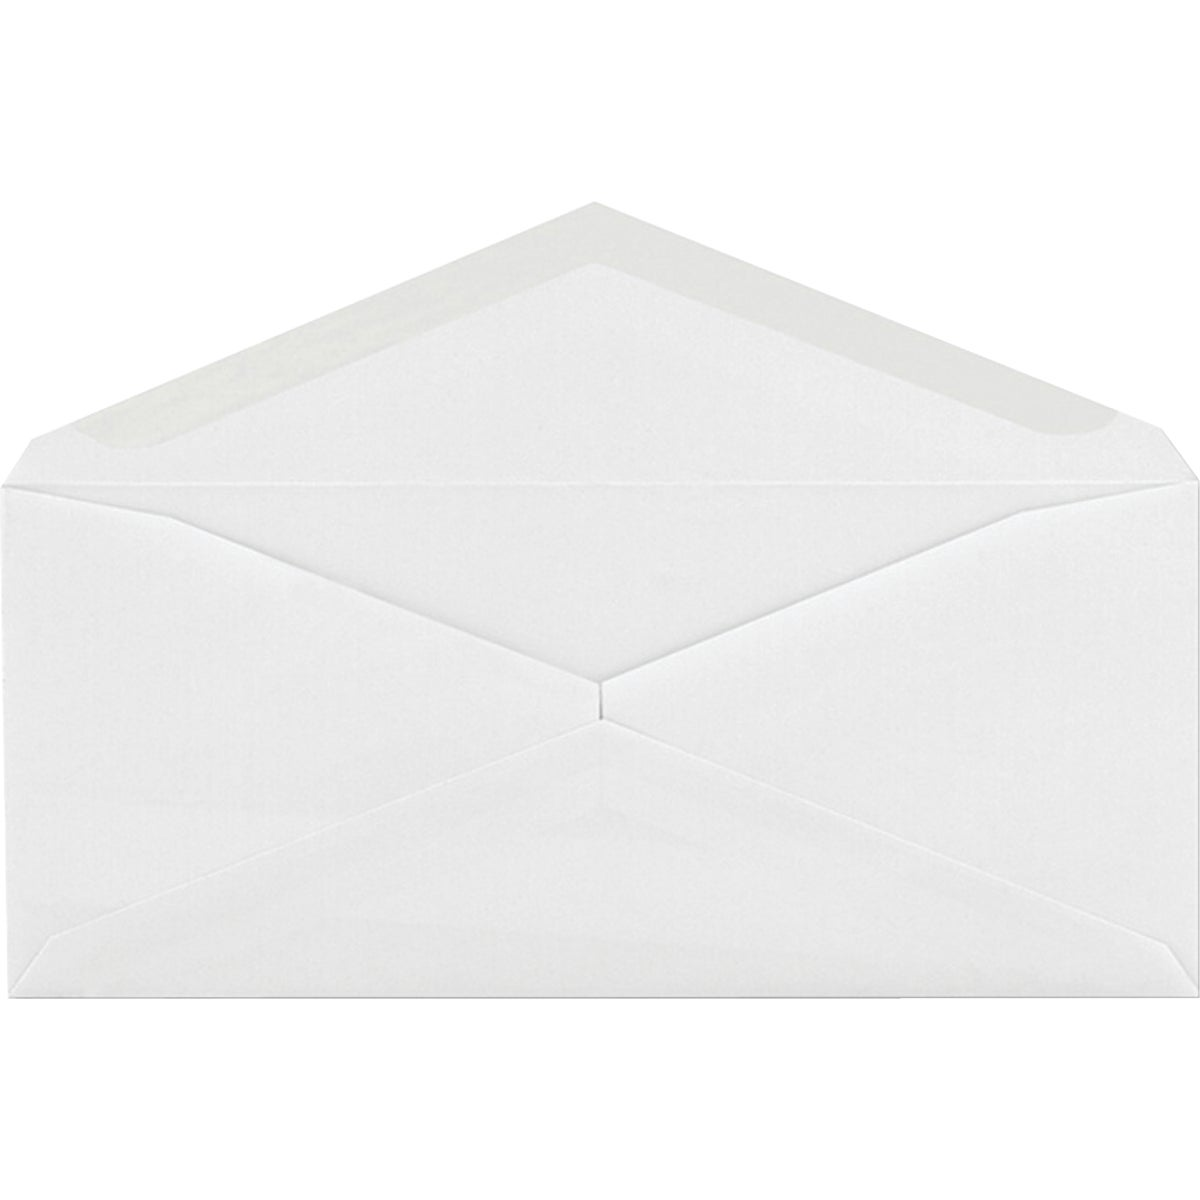 100PK #10 LETTR ENVELOPE - WEVCO196 by United Stationers